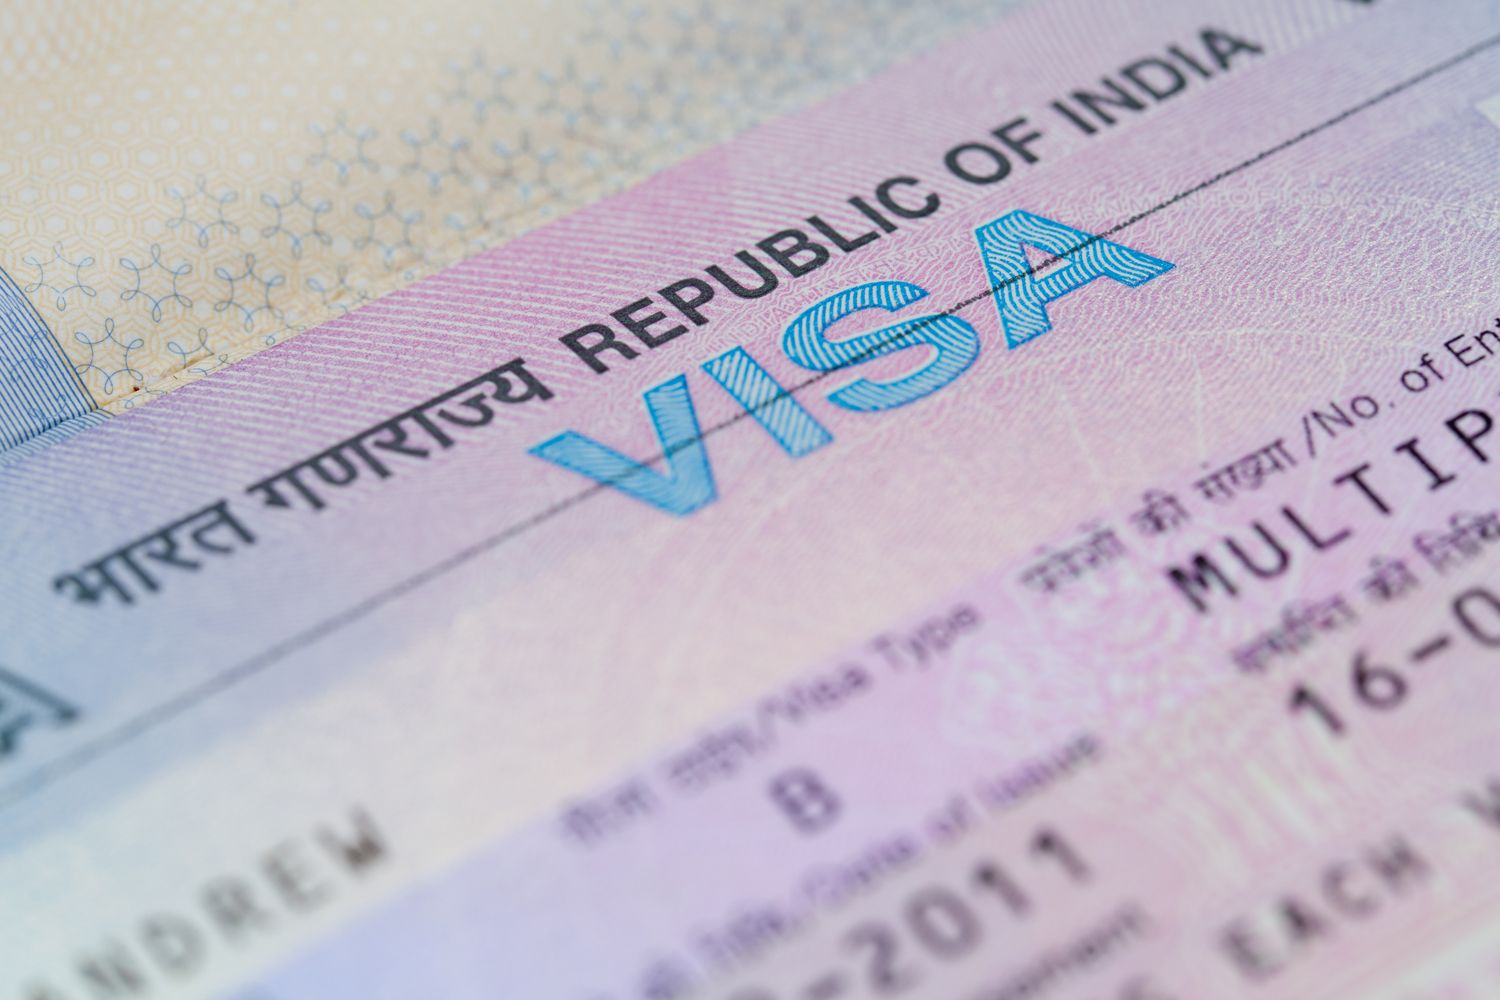 Obtaining Business, Conference And Employment Visas In